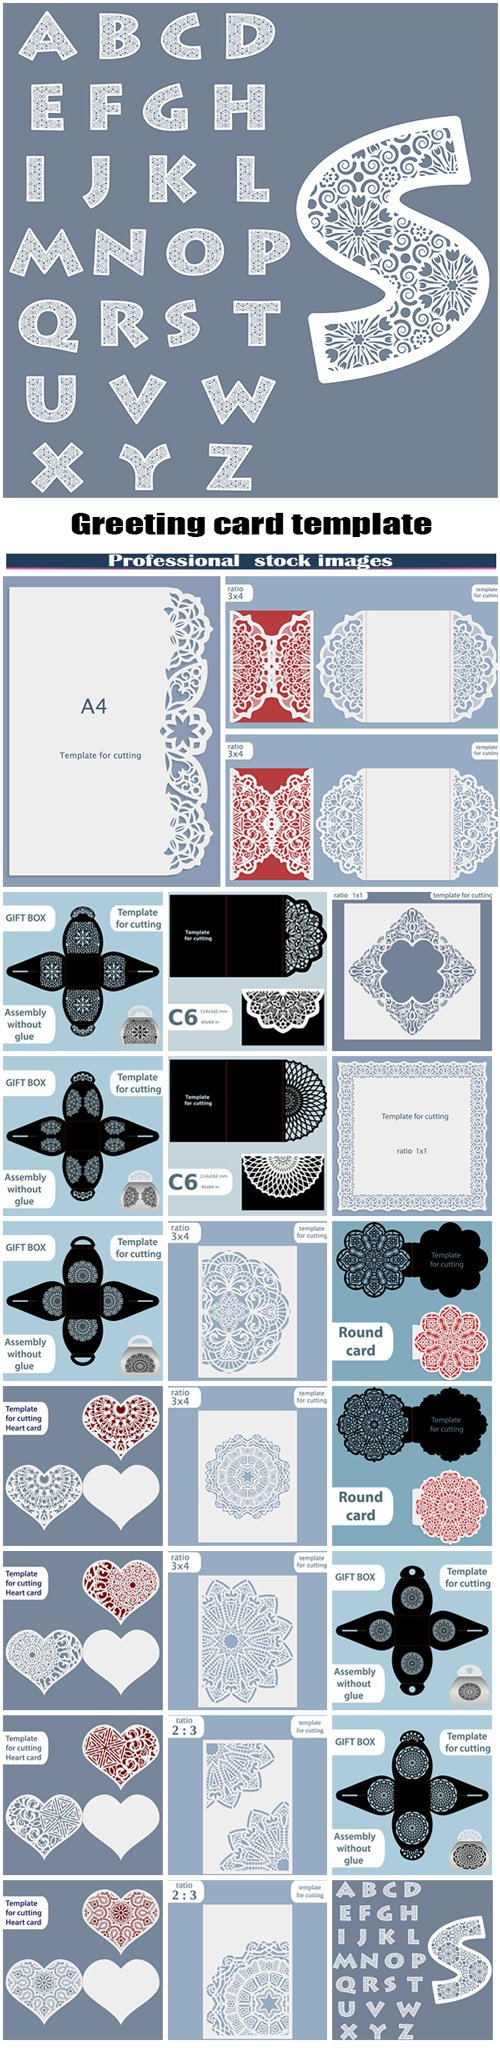 Greeting card template for cutting plotter #6